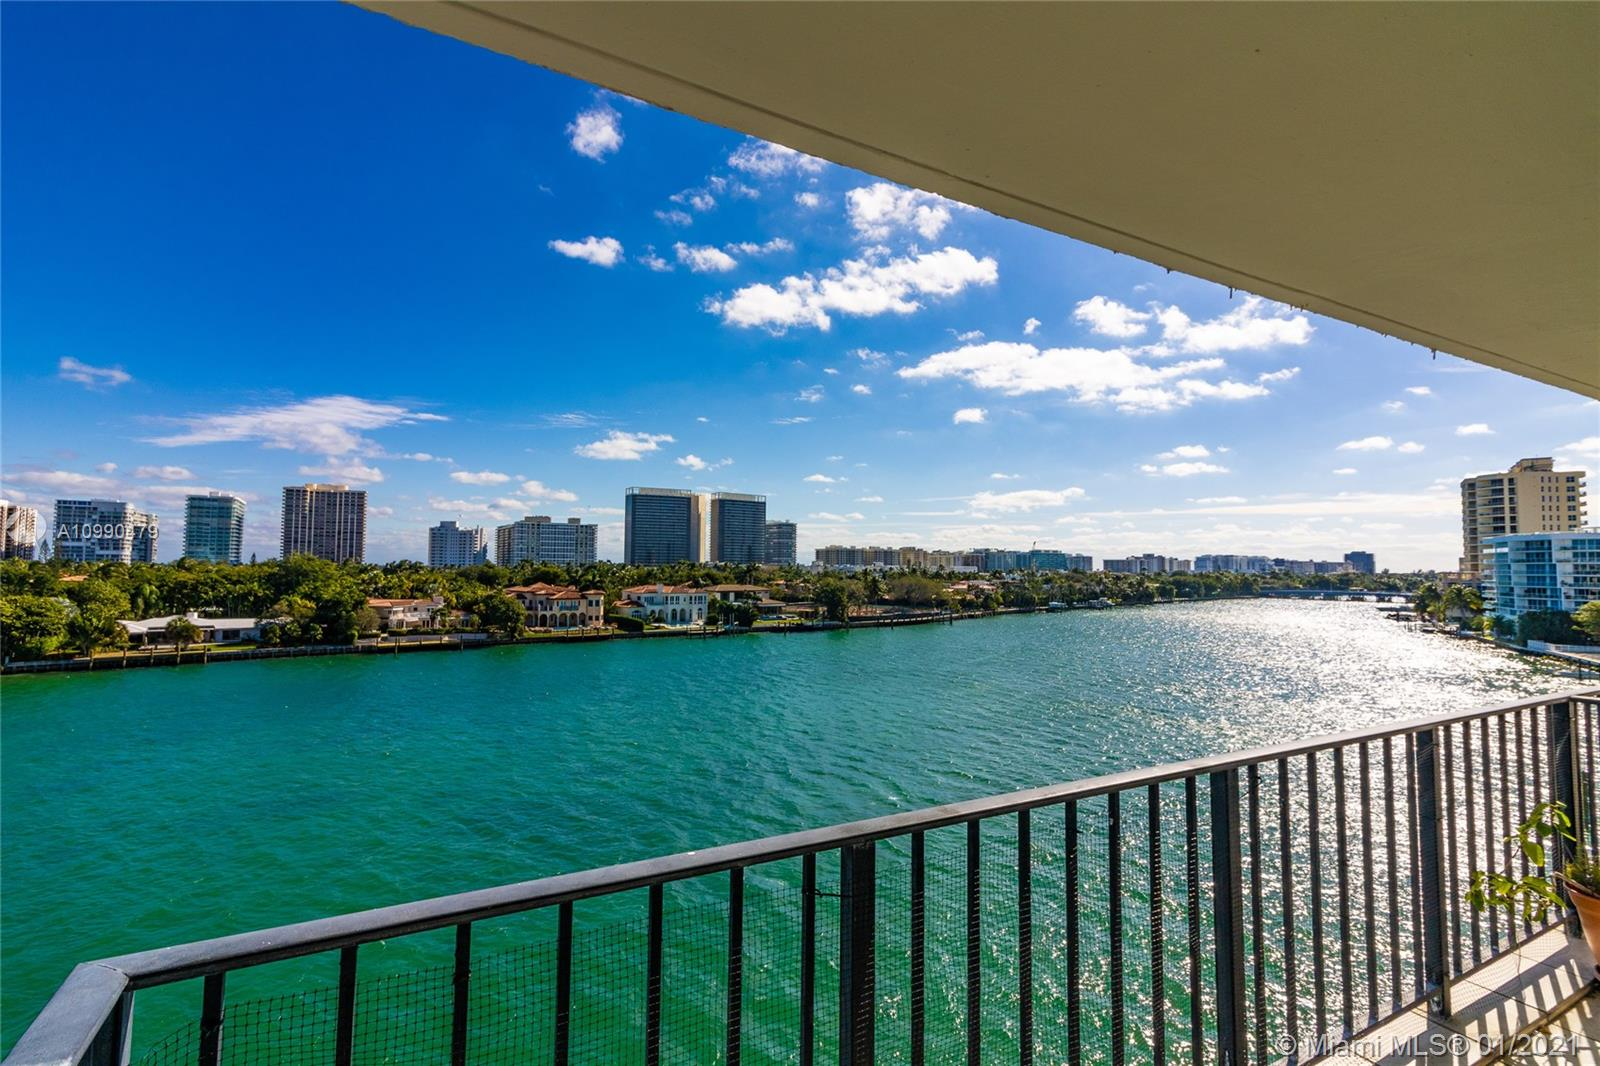 """Buyer Investors only - Property is rented for a year -  Magnificent Water Views from every room of this spacious 2 bedroom apartment in the prestigious Bay Harbor neighborhood. Updated Kitchen with Stainless Steel Appliances. Walk-in Closets. Hurricane Proof Windows. 3 Assigned Parking Spaces. Concierge/Doorman. Heated Pool. Paddleboard Access to the Intercoastal Waters. Bike Storage. Common Room/ Party Room for hosting events. Close to world renowned Bal Harbor Shops, Restaurants, and Beaches. """"A"""" Grade Elementary and Middle School. MONTHLY MAINTENANCE INCLUDES EVERYTHING: Electricity, A/C, Cable, Internet, and Hot Water."""